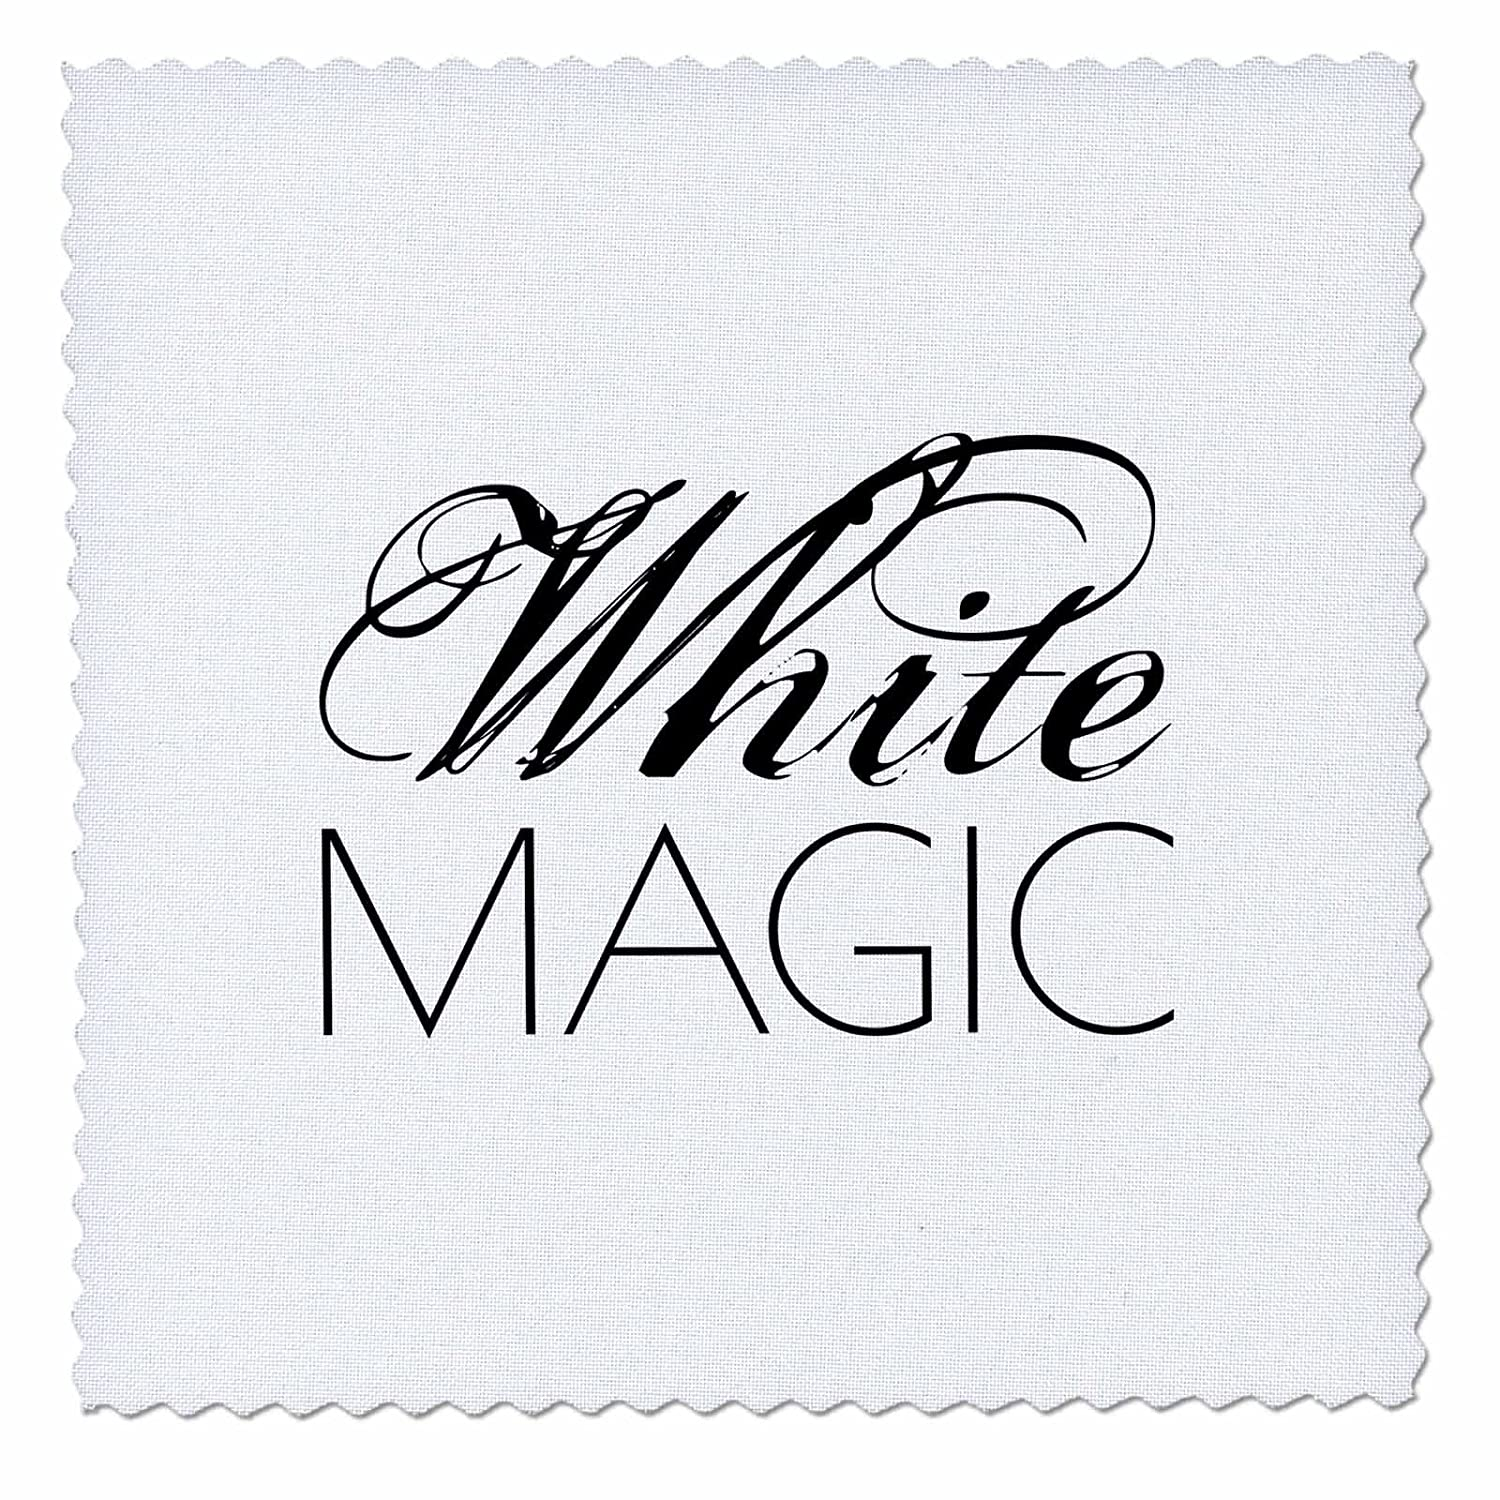 3dRose Alexis Design - Typography - White Magic Decorative Elegant Text on White Background - 14x14 inch Quilt Square (qs_280966_5)